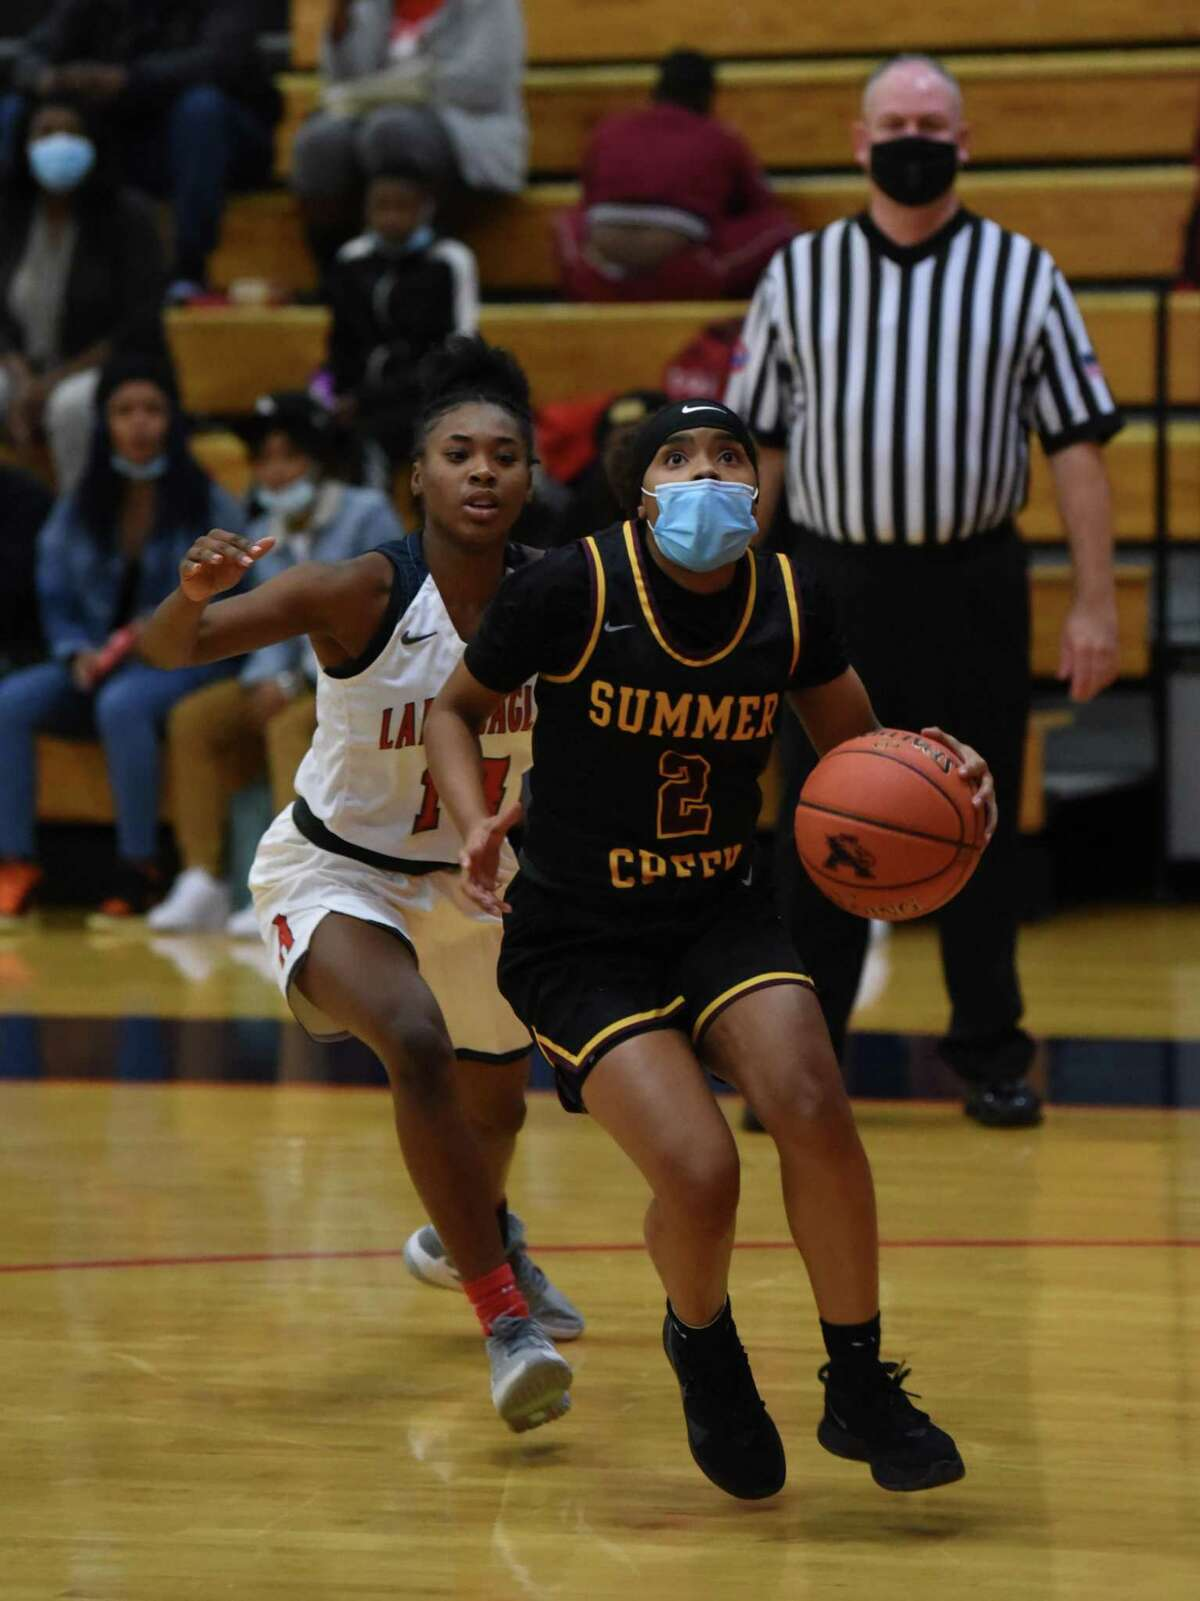 Summer Creek guard Alayia Francis drive to the basket for a layup in the District 21-6A opener against No. 20 Atascocita at the Eagles gym.